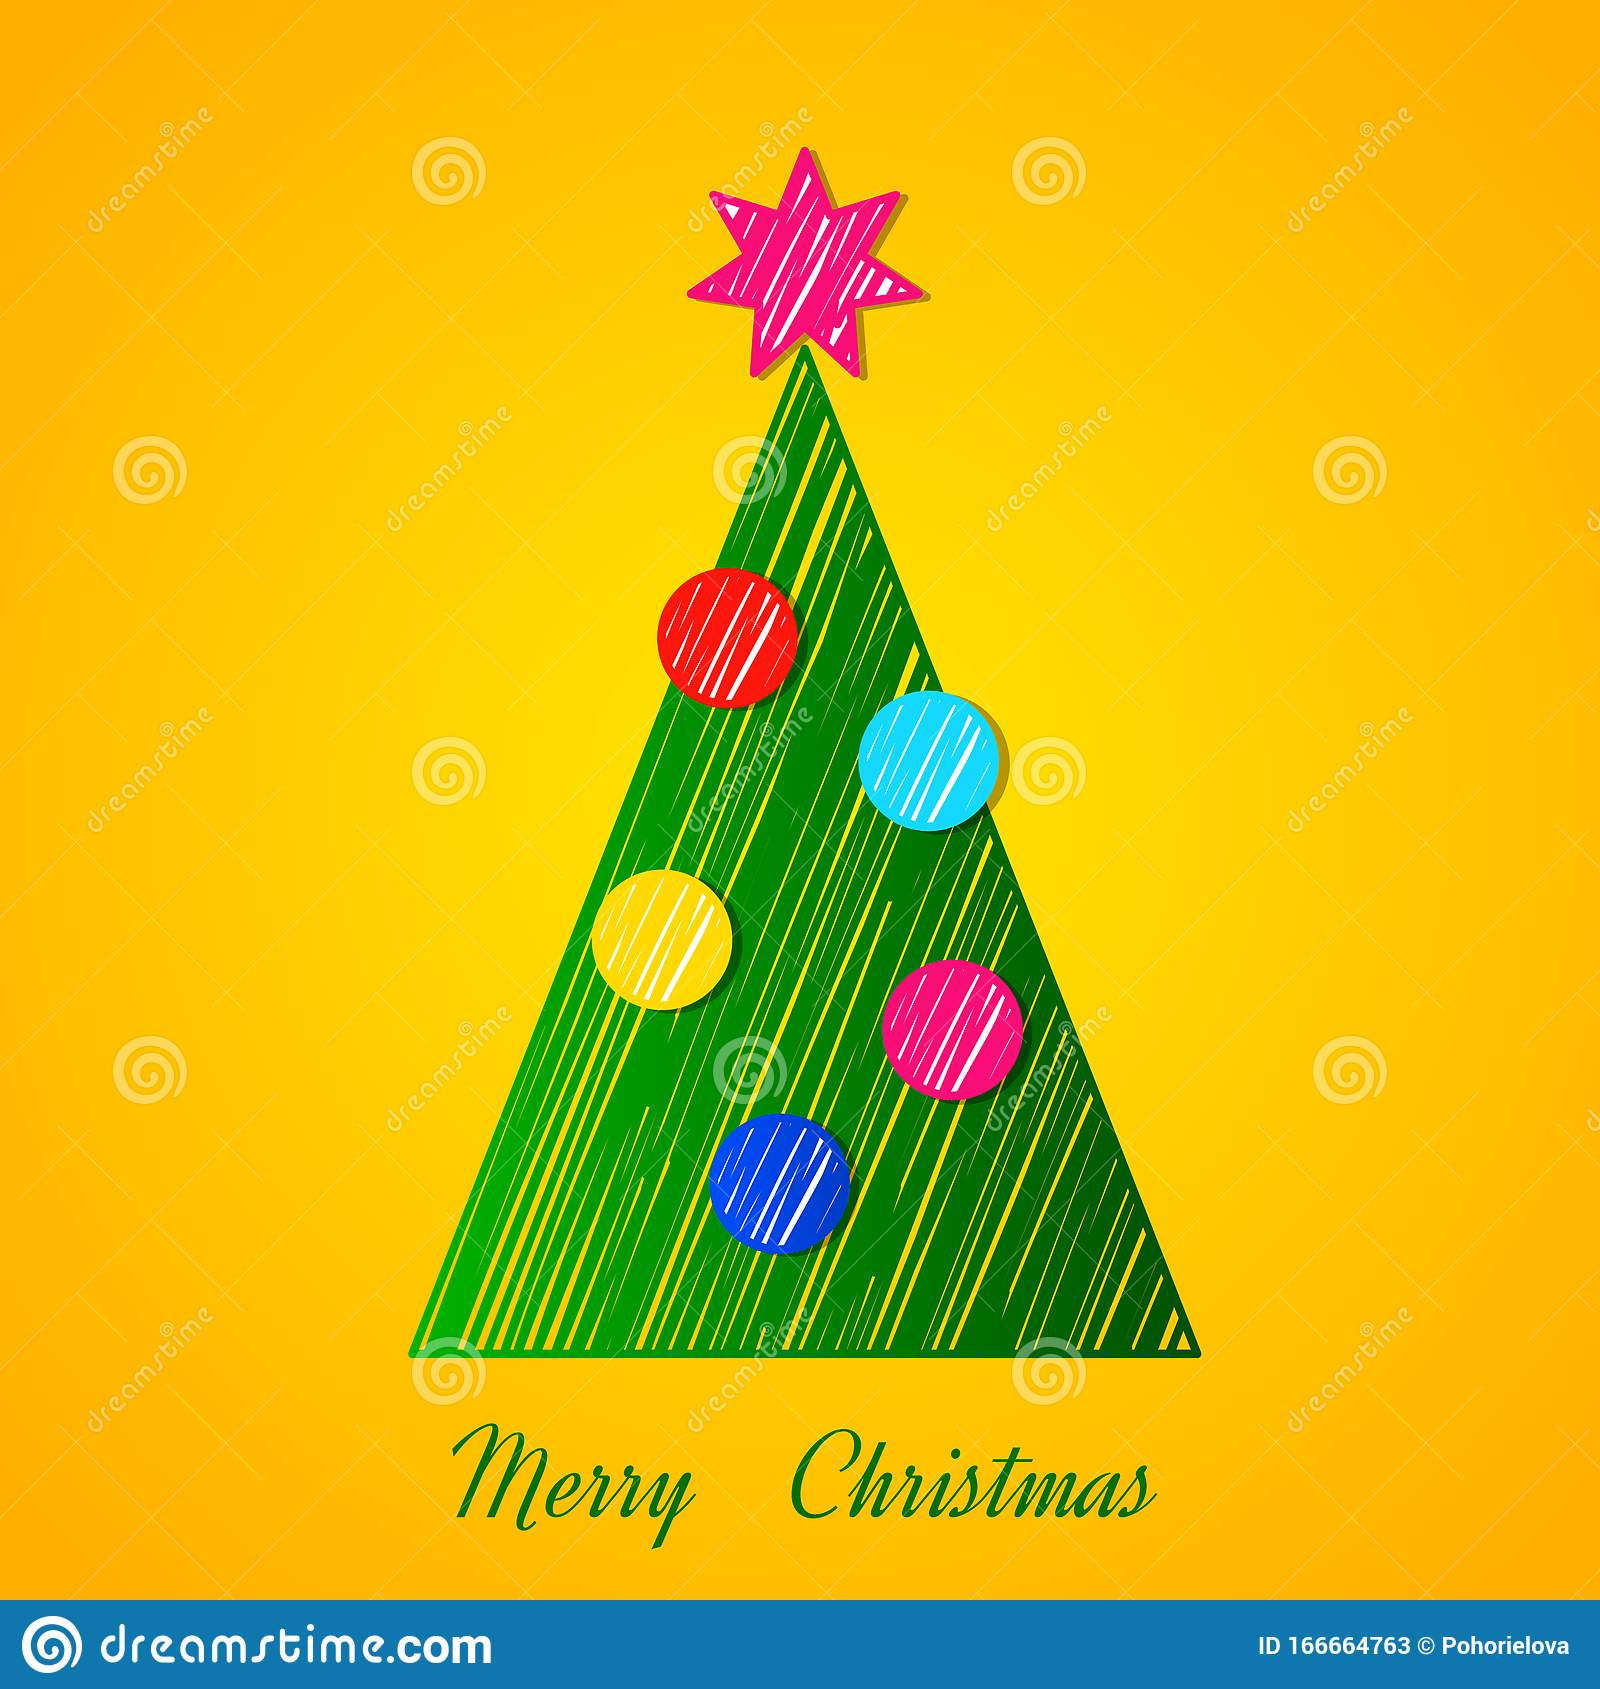 Modern Christmas Tree In The Style Of A Hand Made Outline With New Year S Balls And A Garland Stock Illustration Illustration Of Bright Graphic 166664763